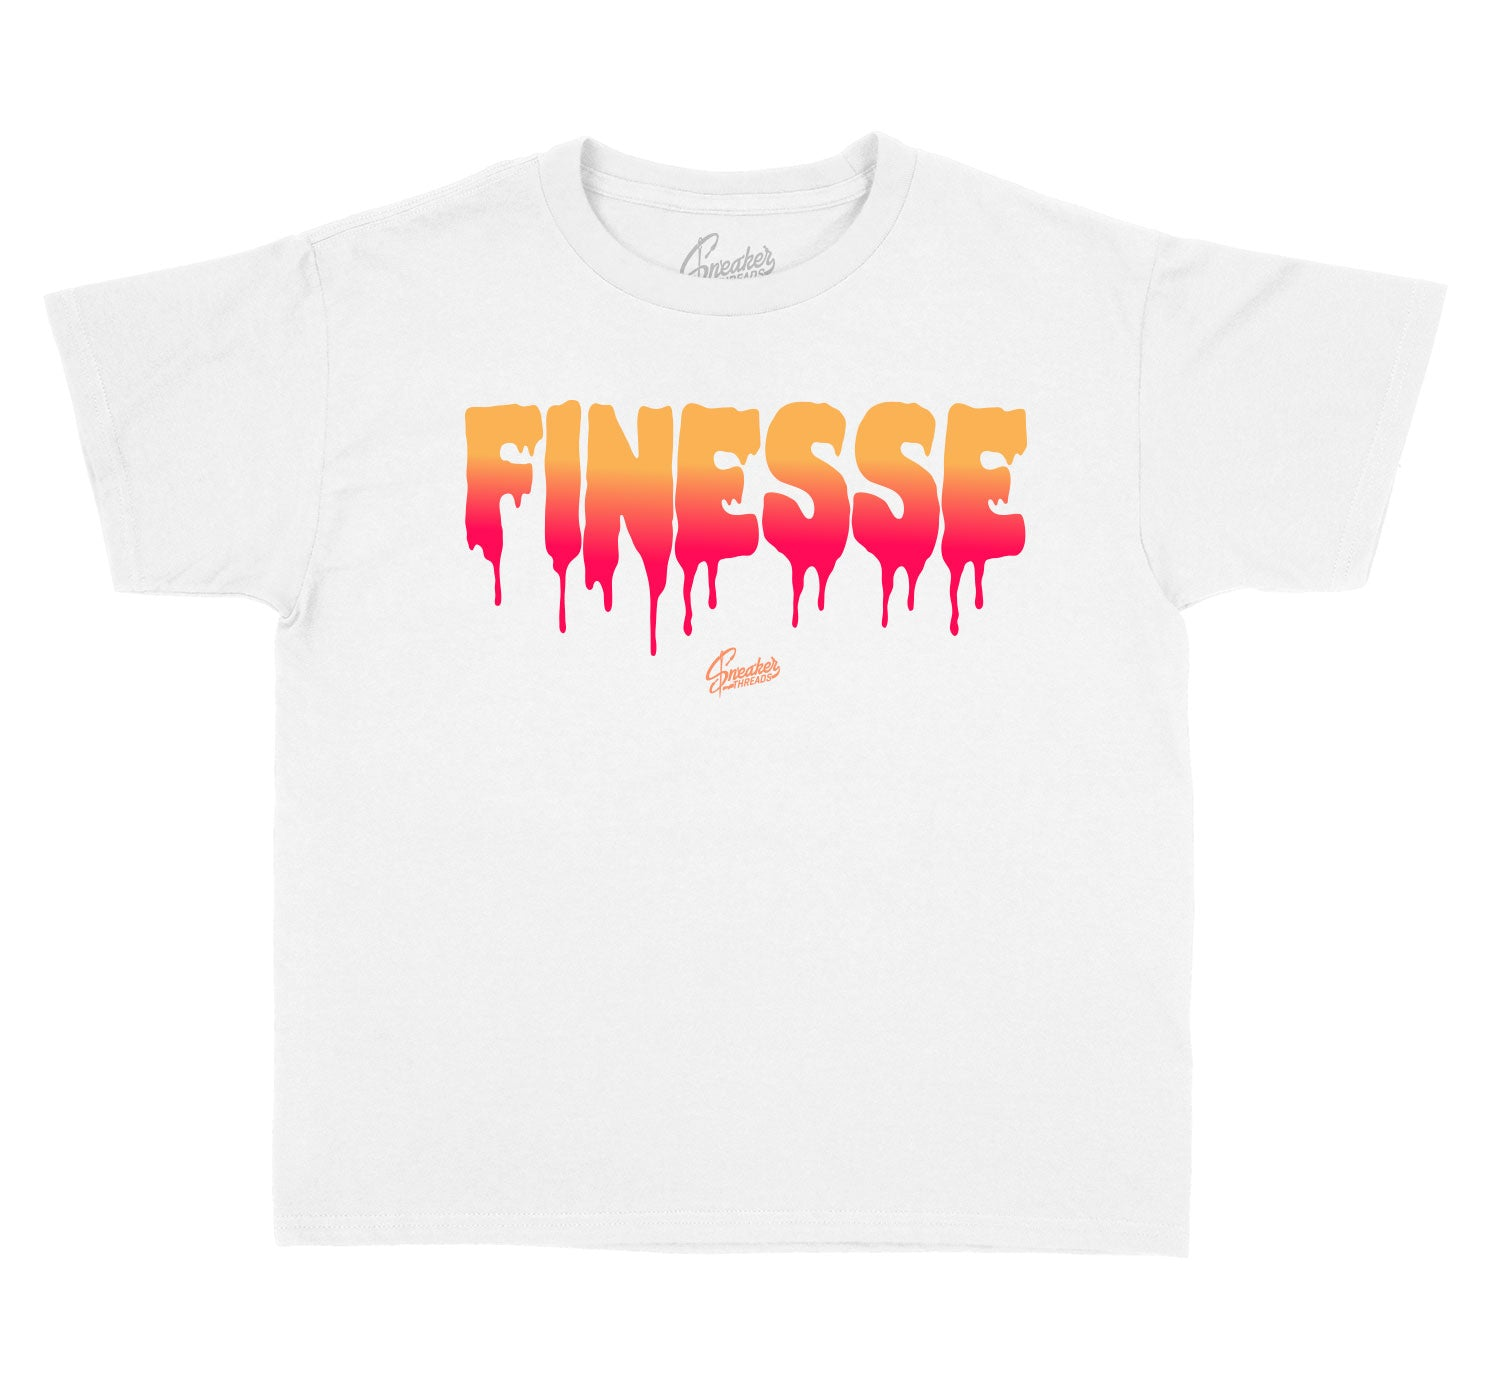 Finesse dopest shirts for kids to match Hot Punch 12's